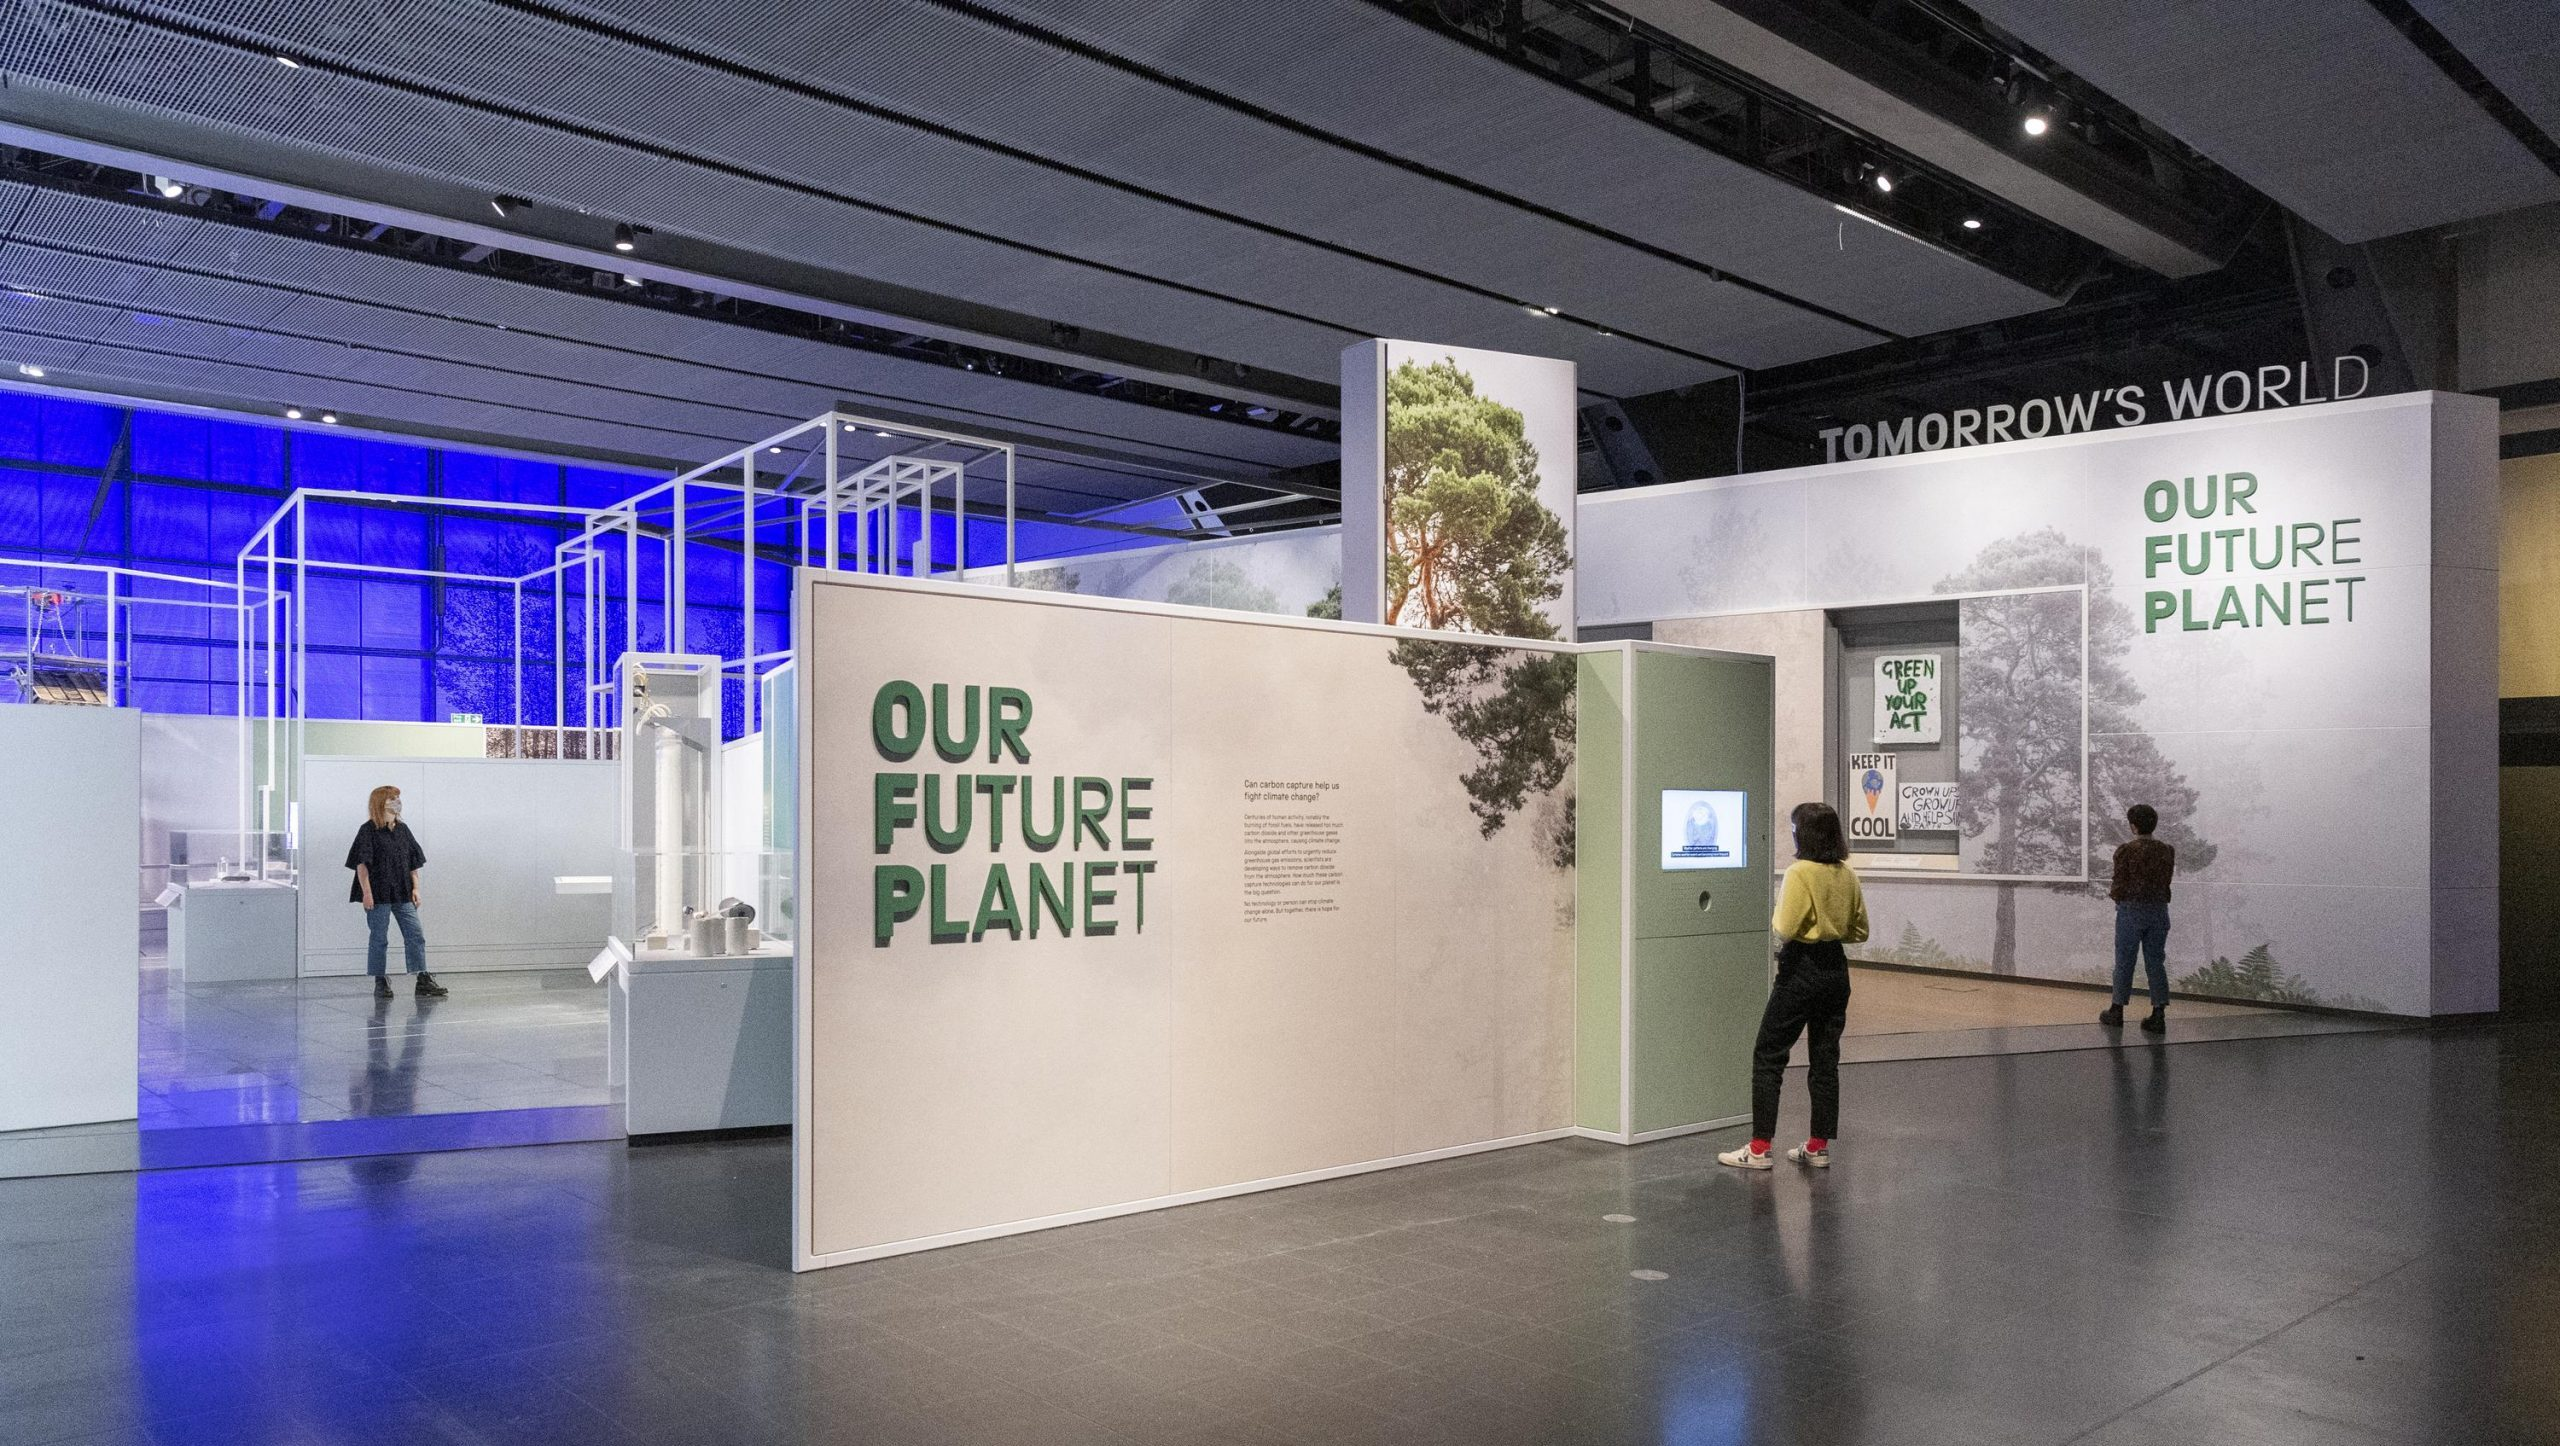 The Our Future Planet exhibition will open to the public next month